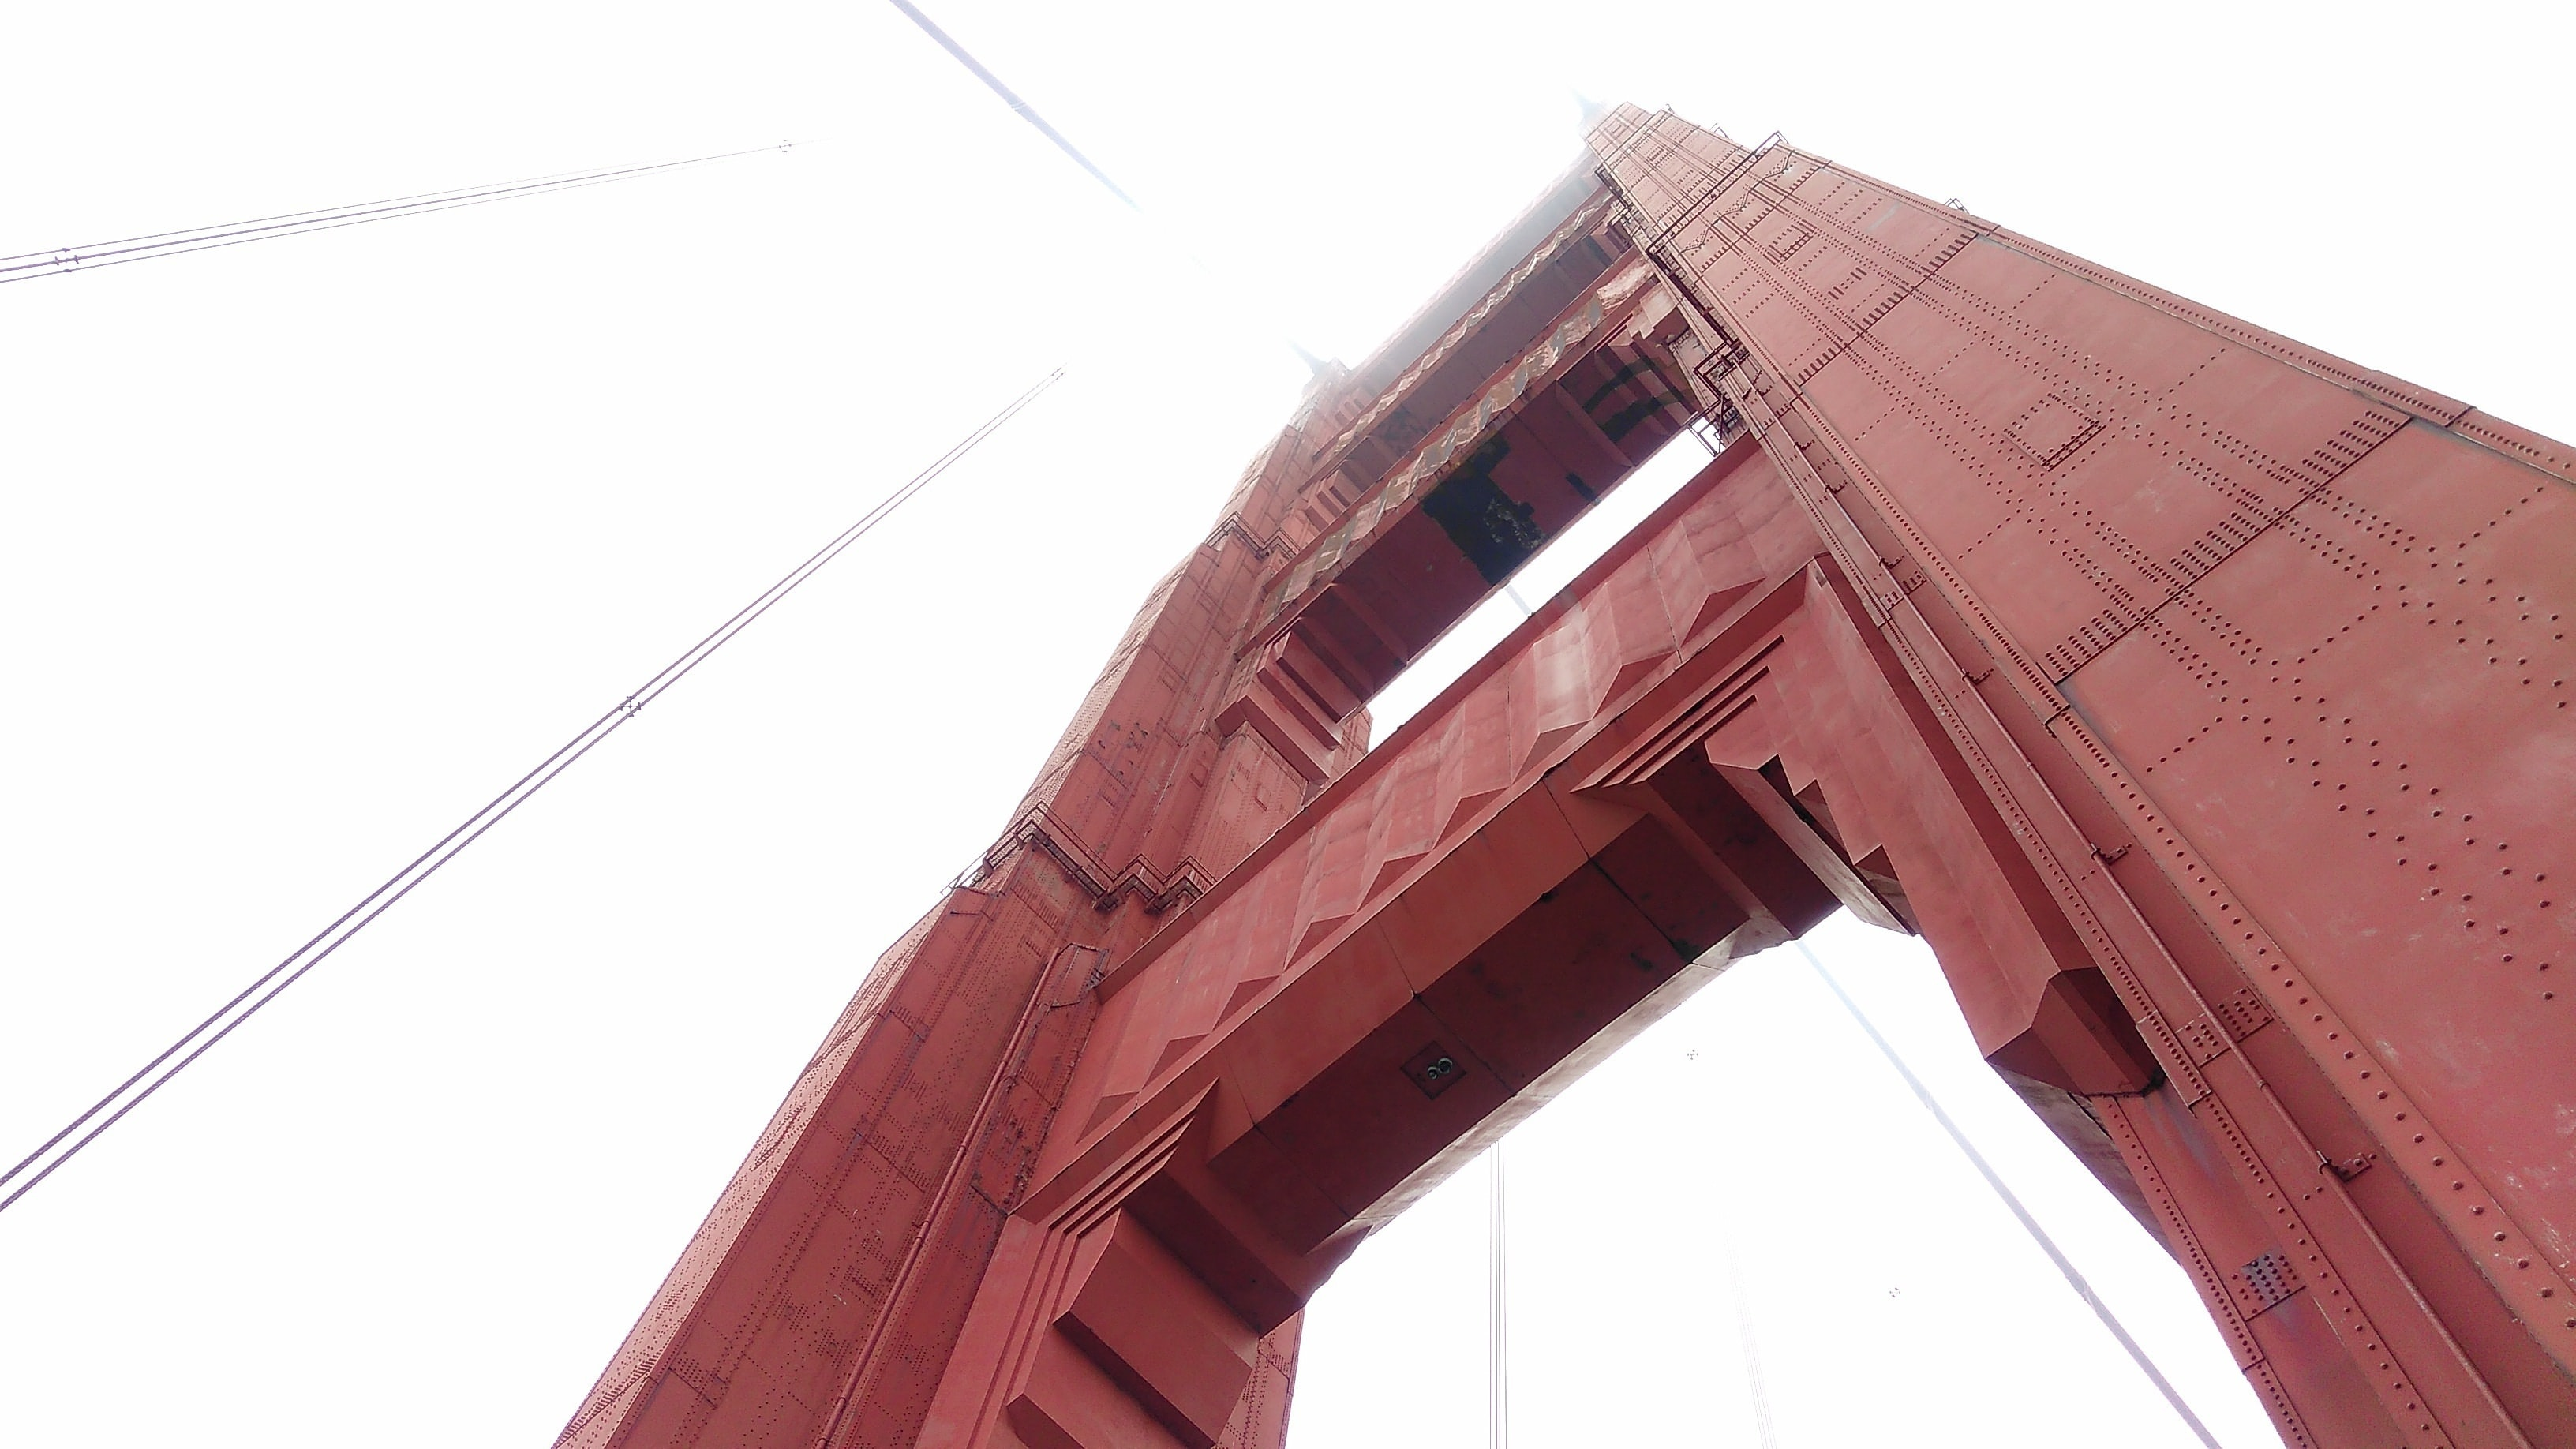 low angle photograph of Golden Gate, New York